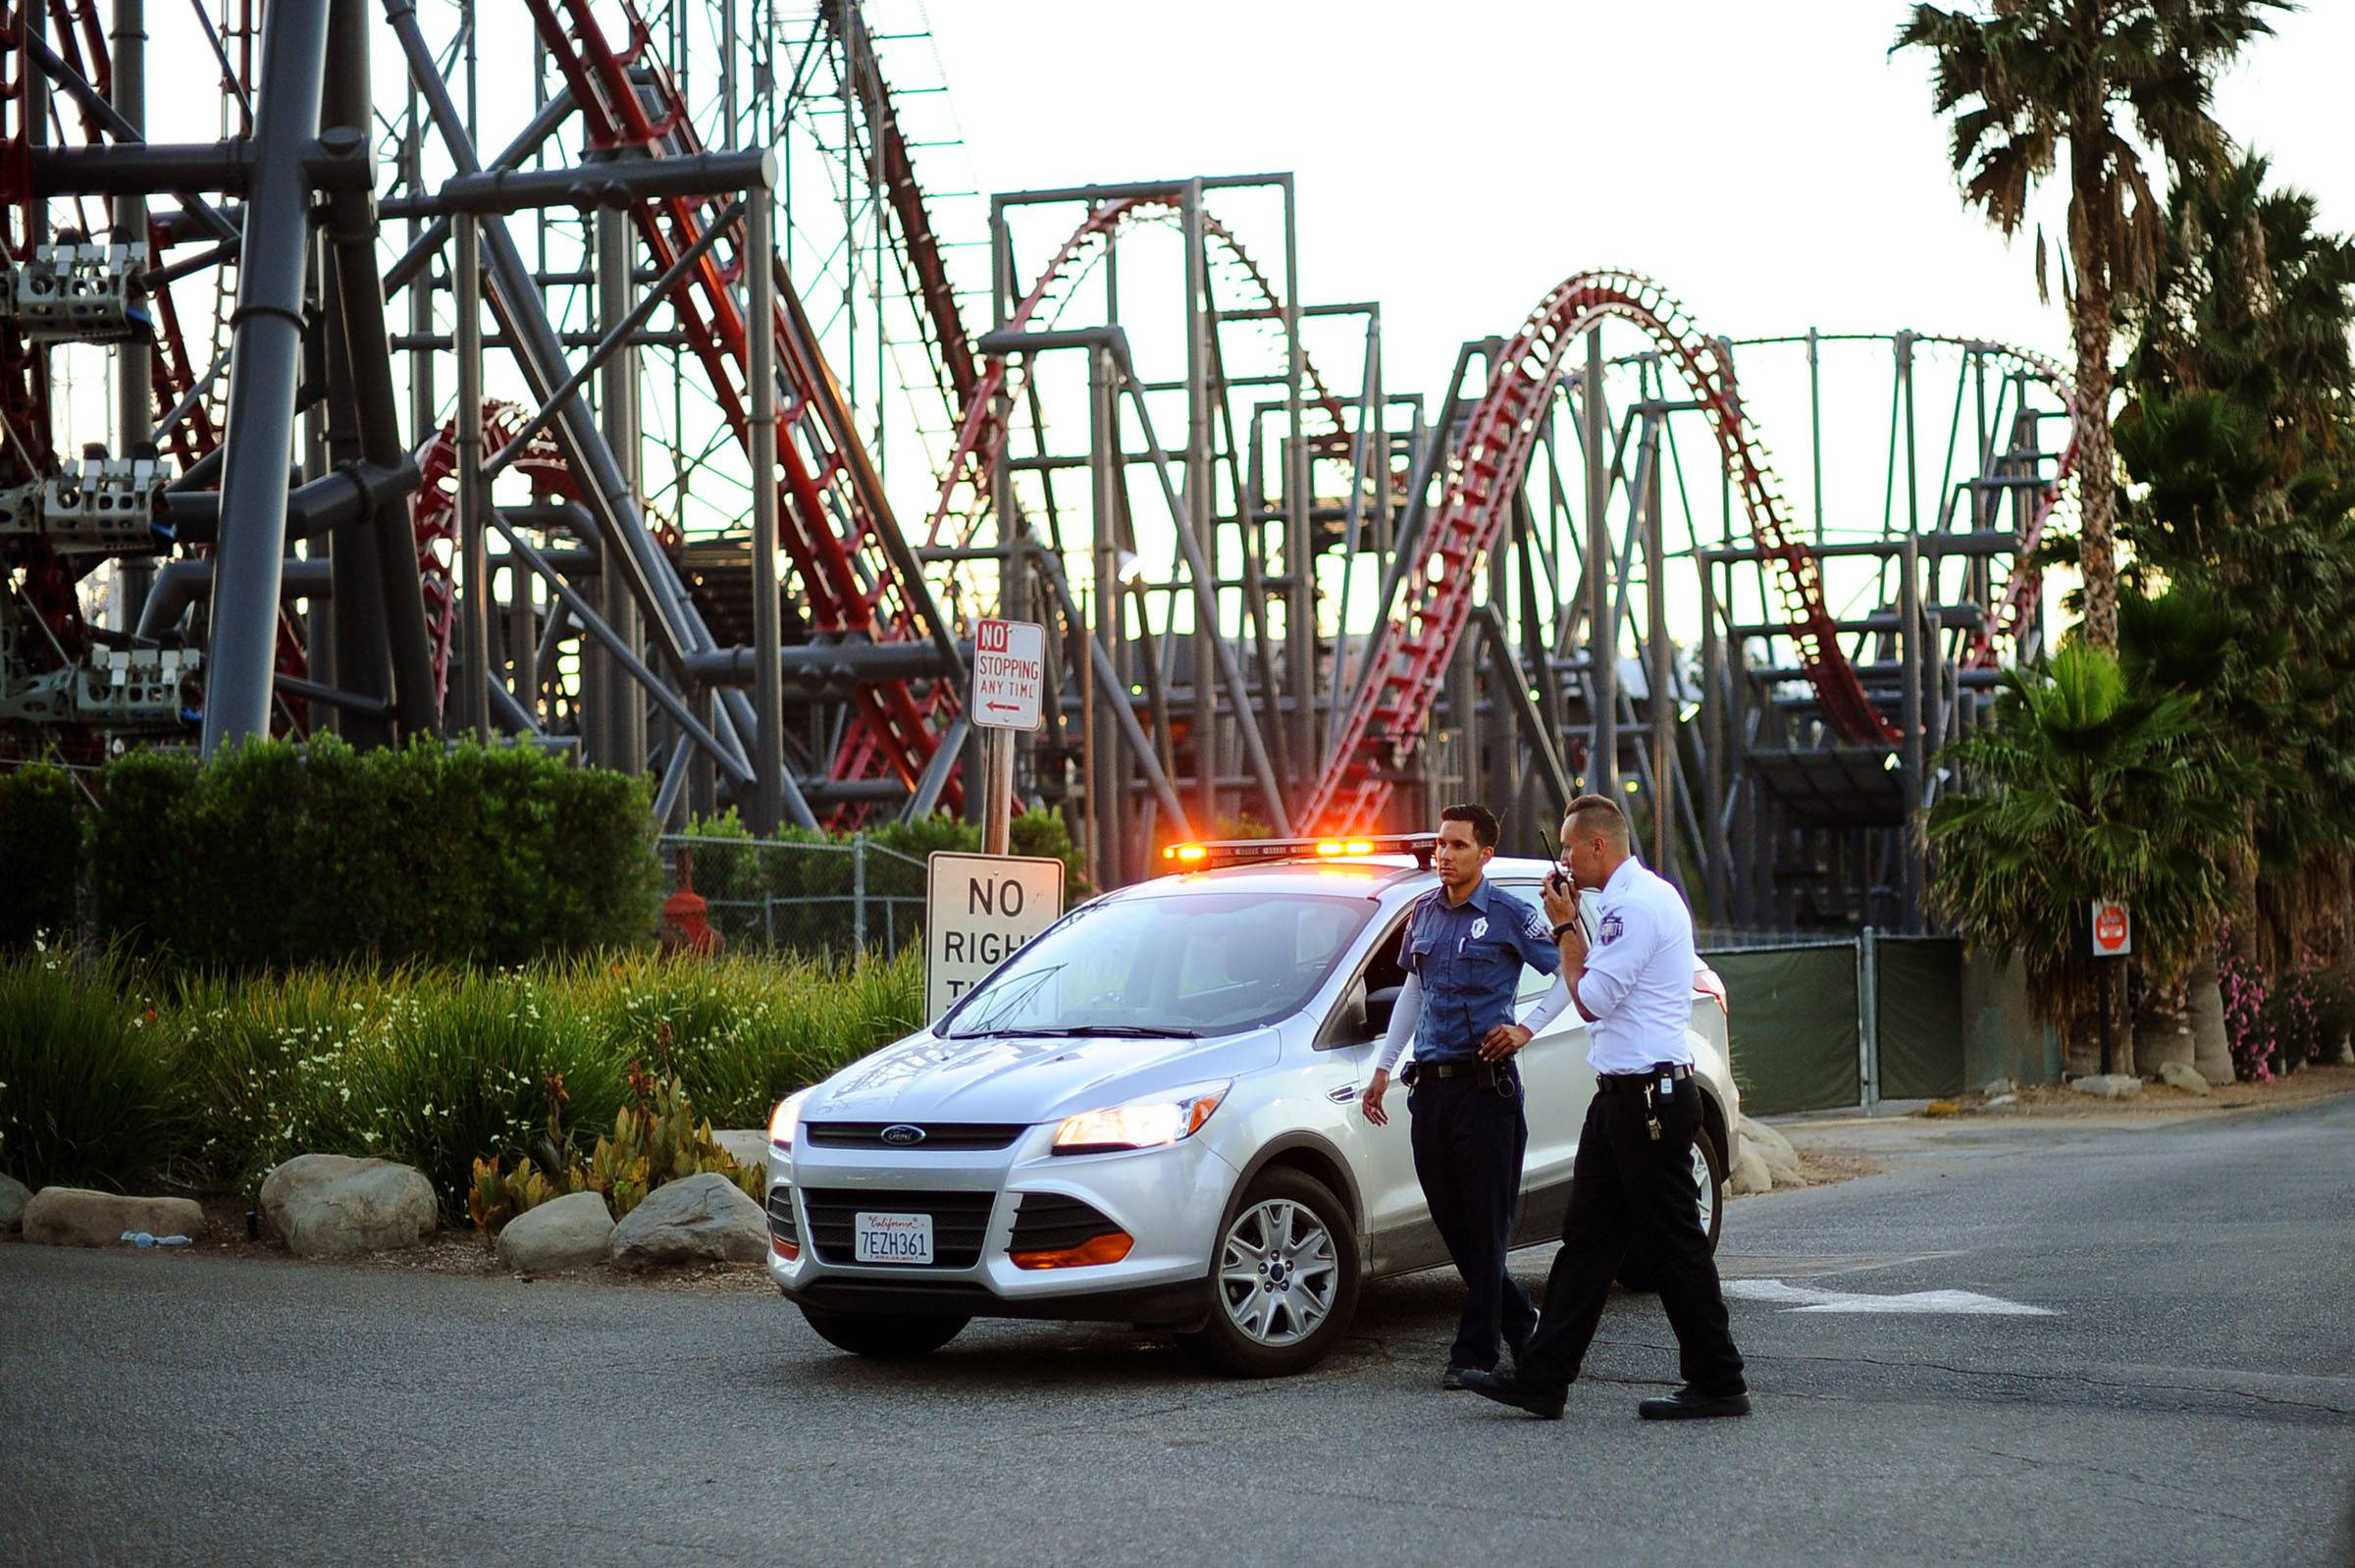 Six Flags Magic Mountain's Ninja roller coaster hit a tree branch dislodging the front car, leaving four people slightly injured and keeping nearly two dozen summer fun-seekers hanging 20 to 30 feet in the air for hours as day turned to night.